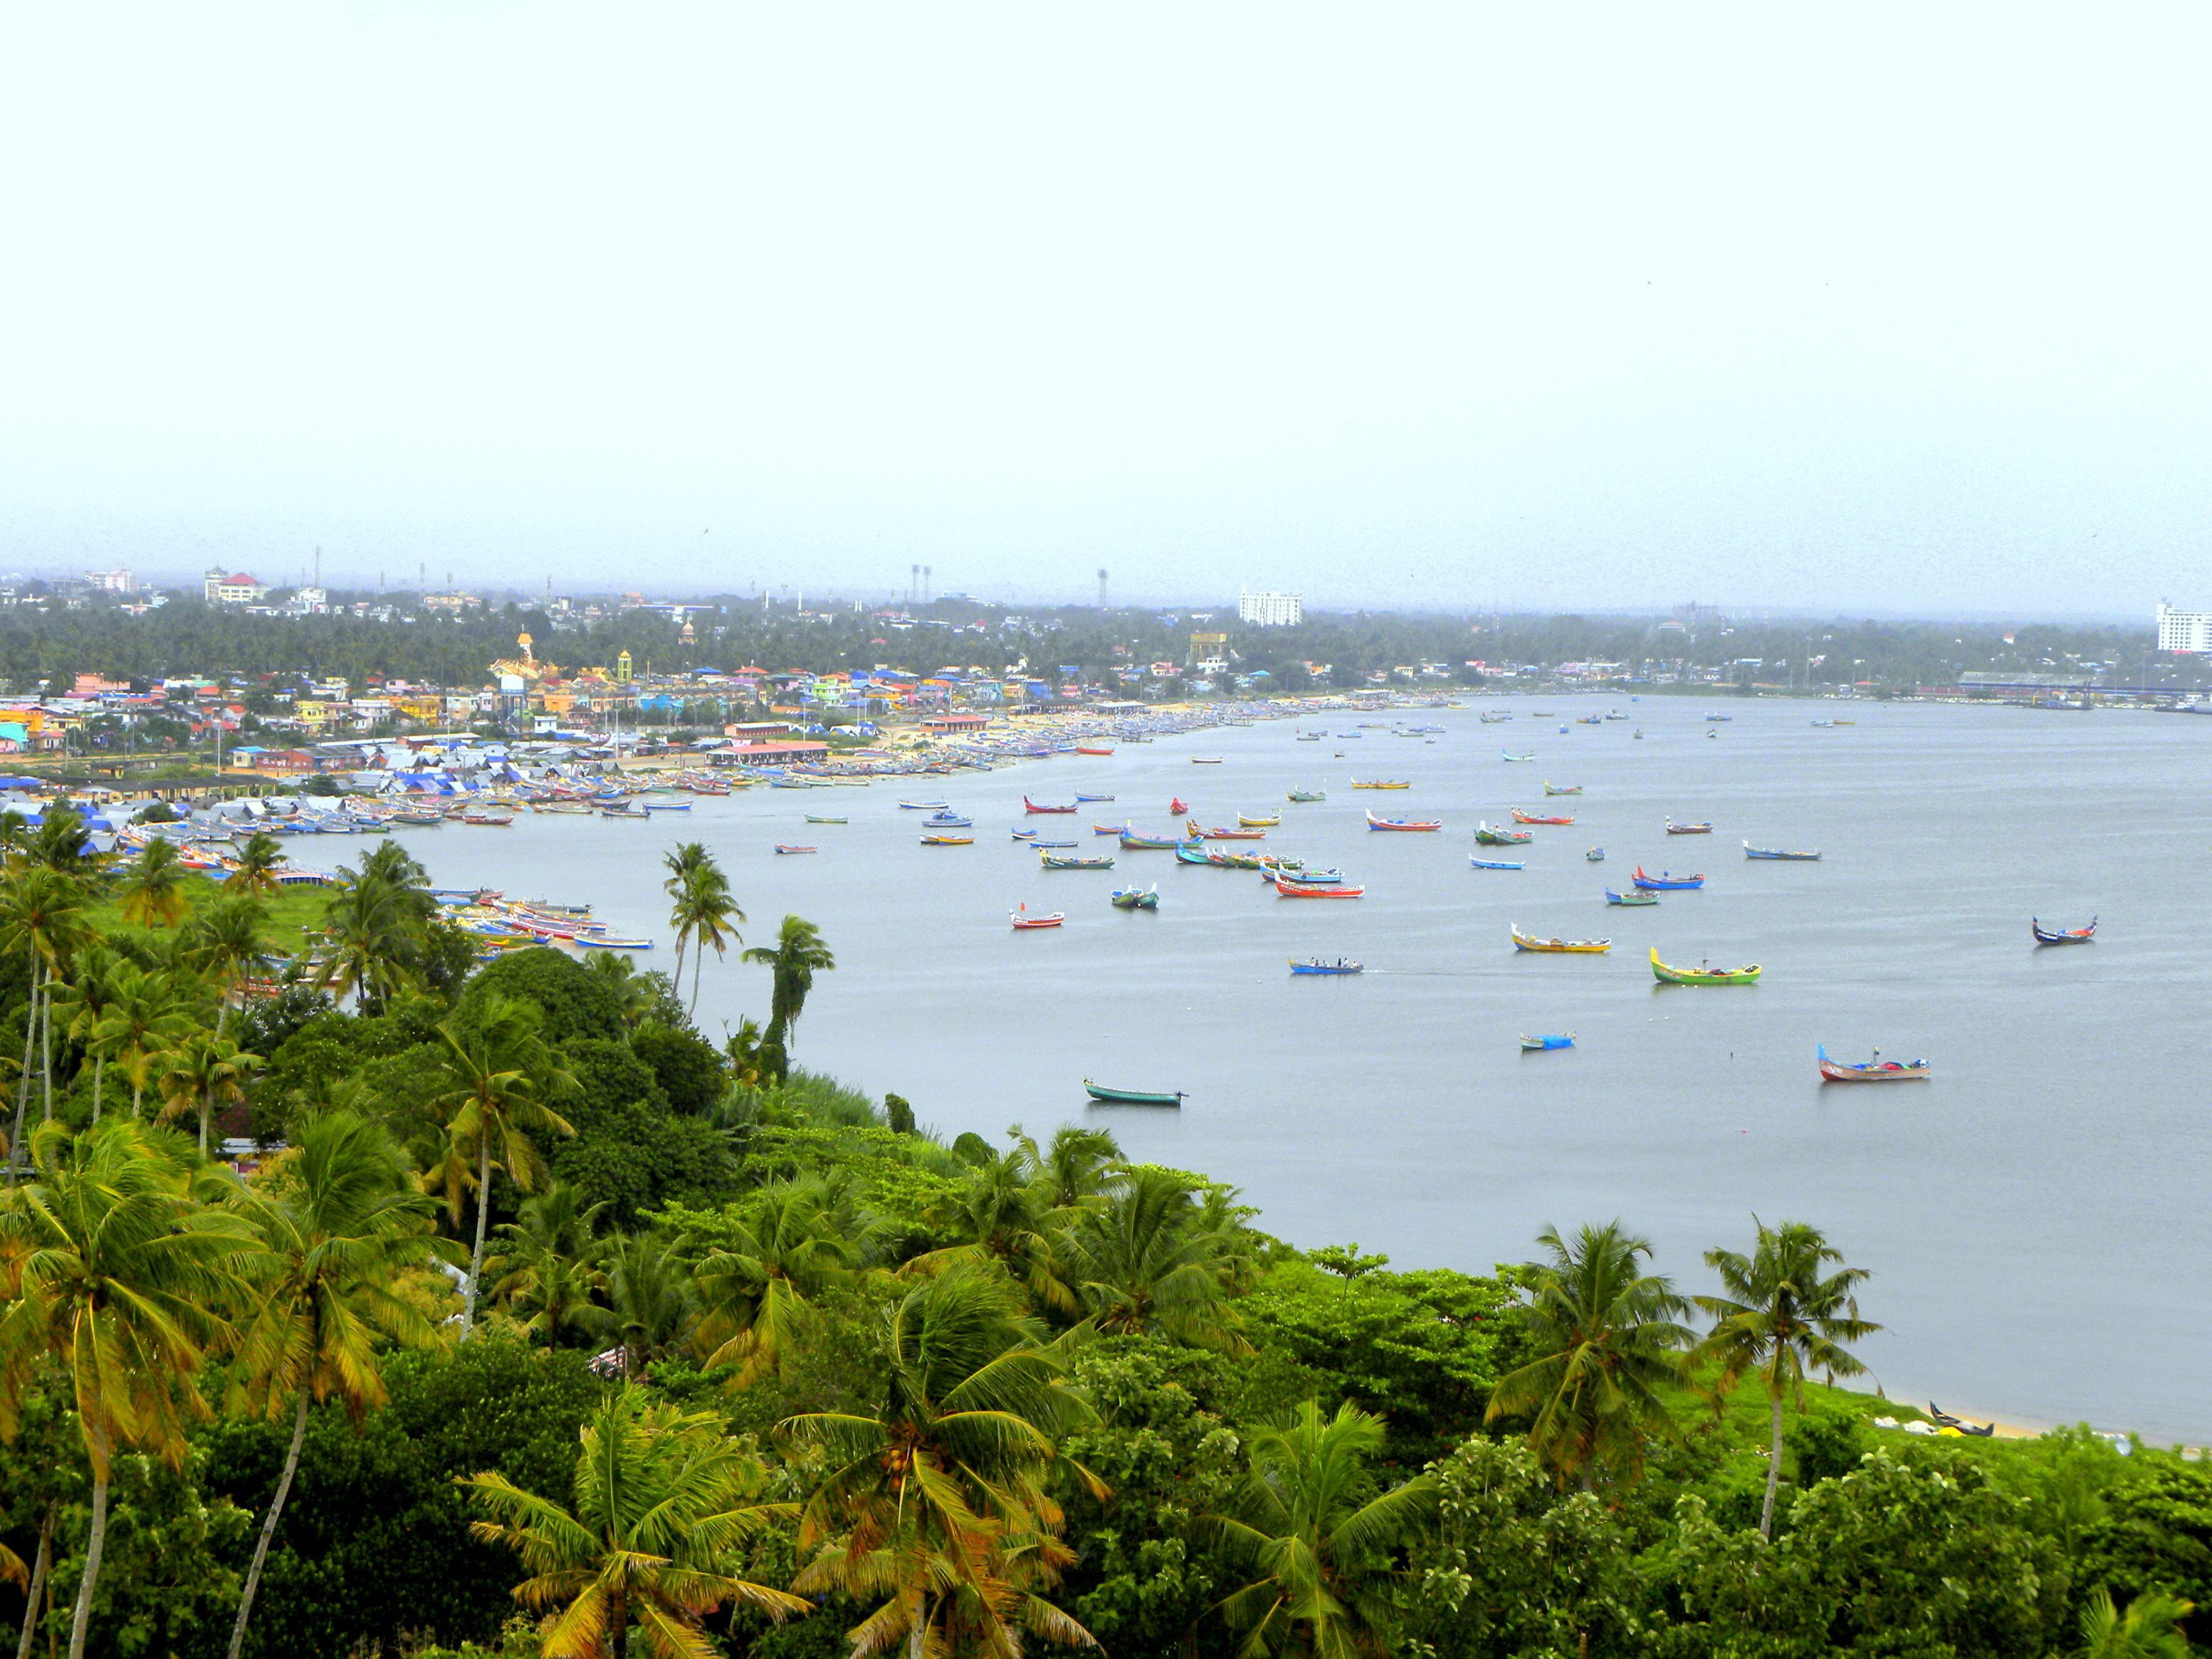 The town of Kollam, Kerala